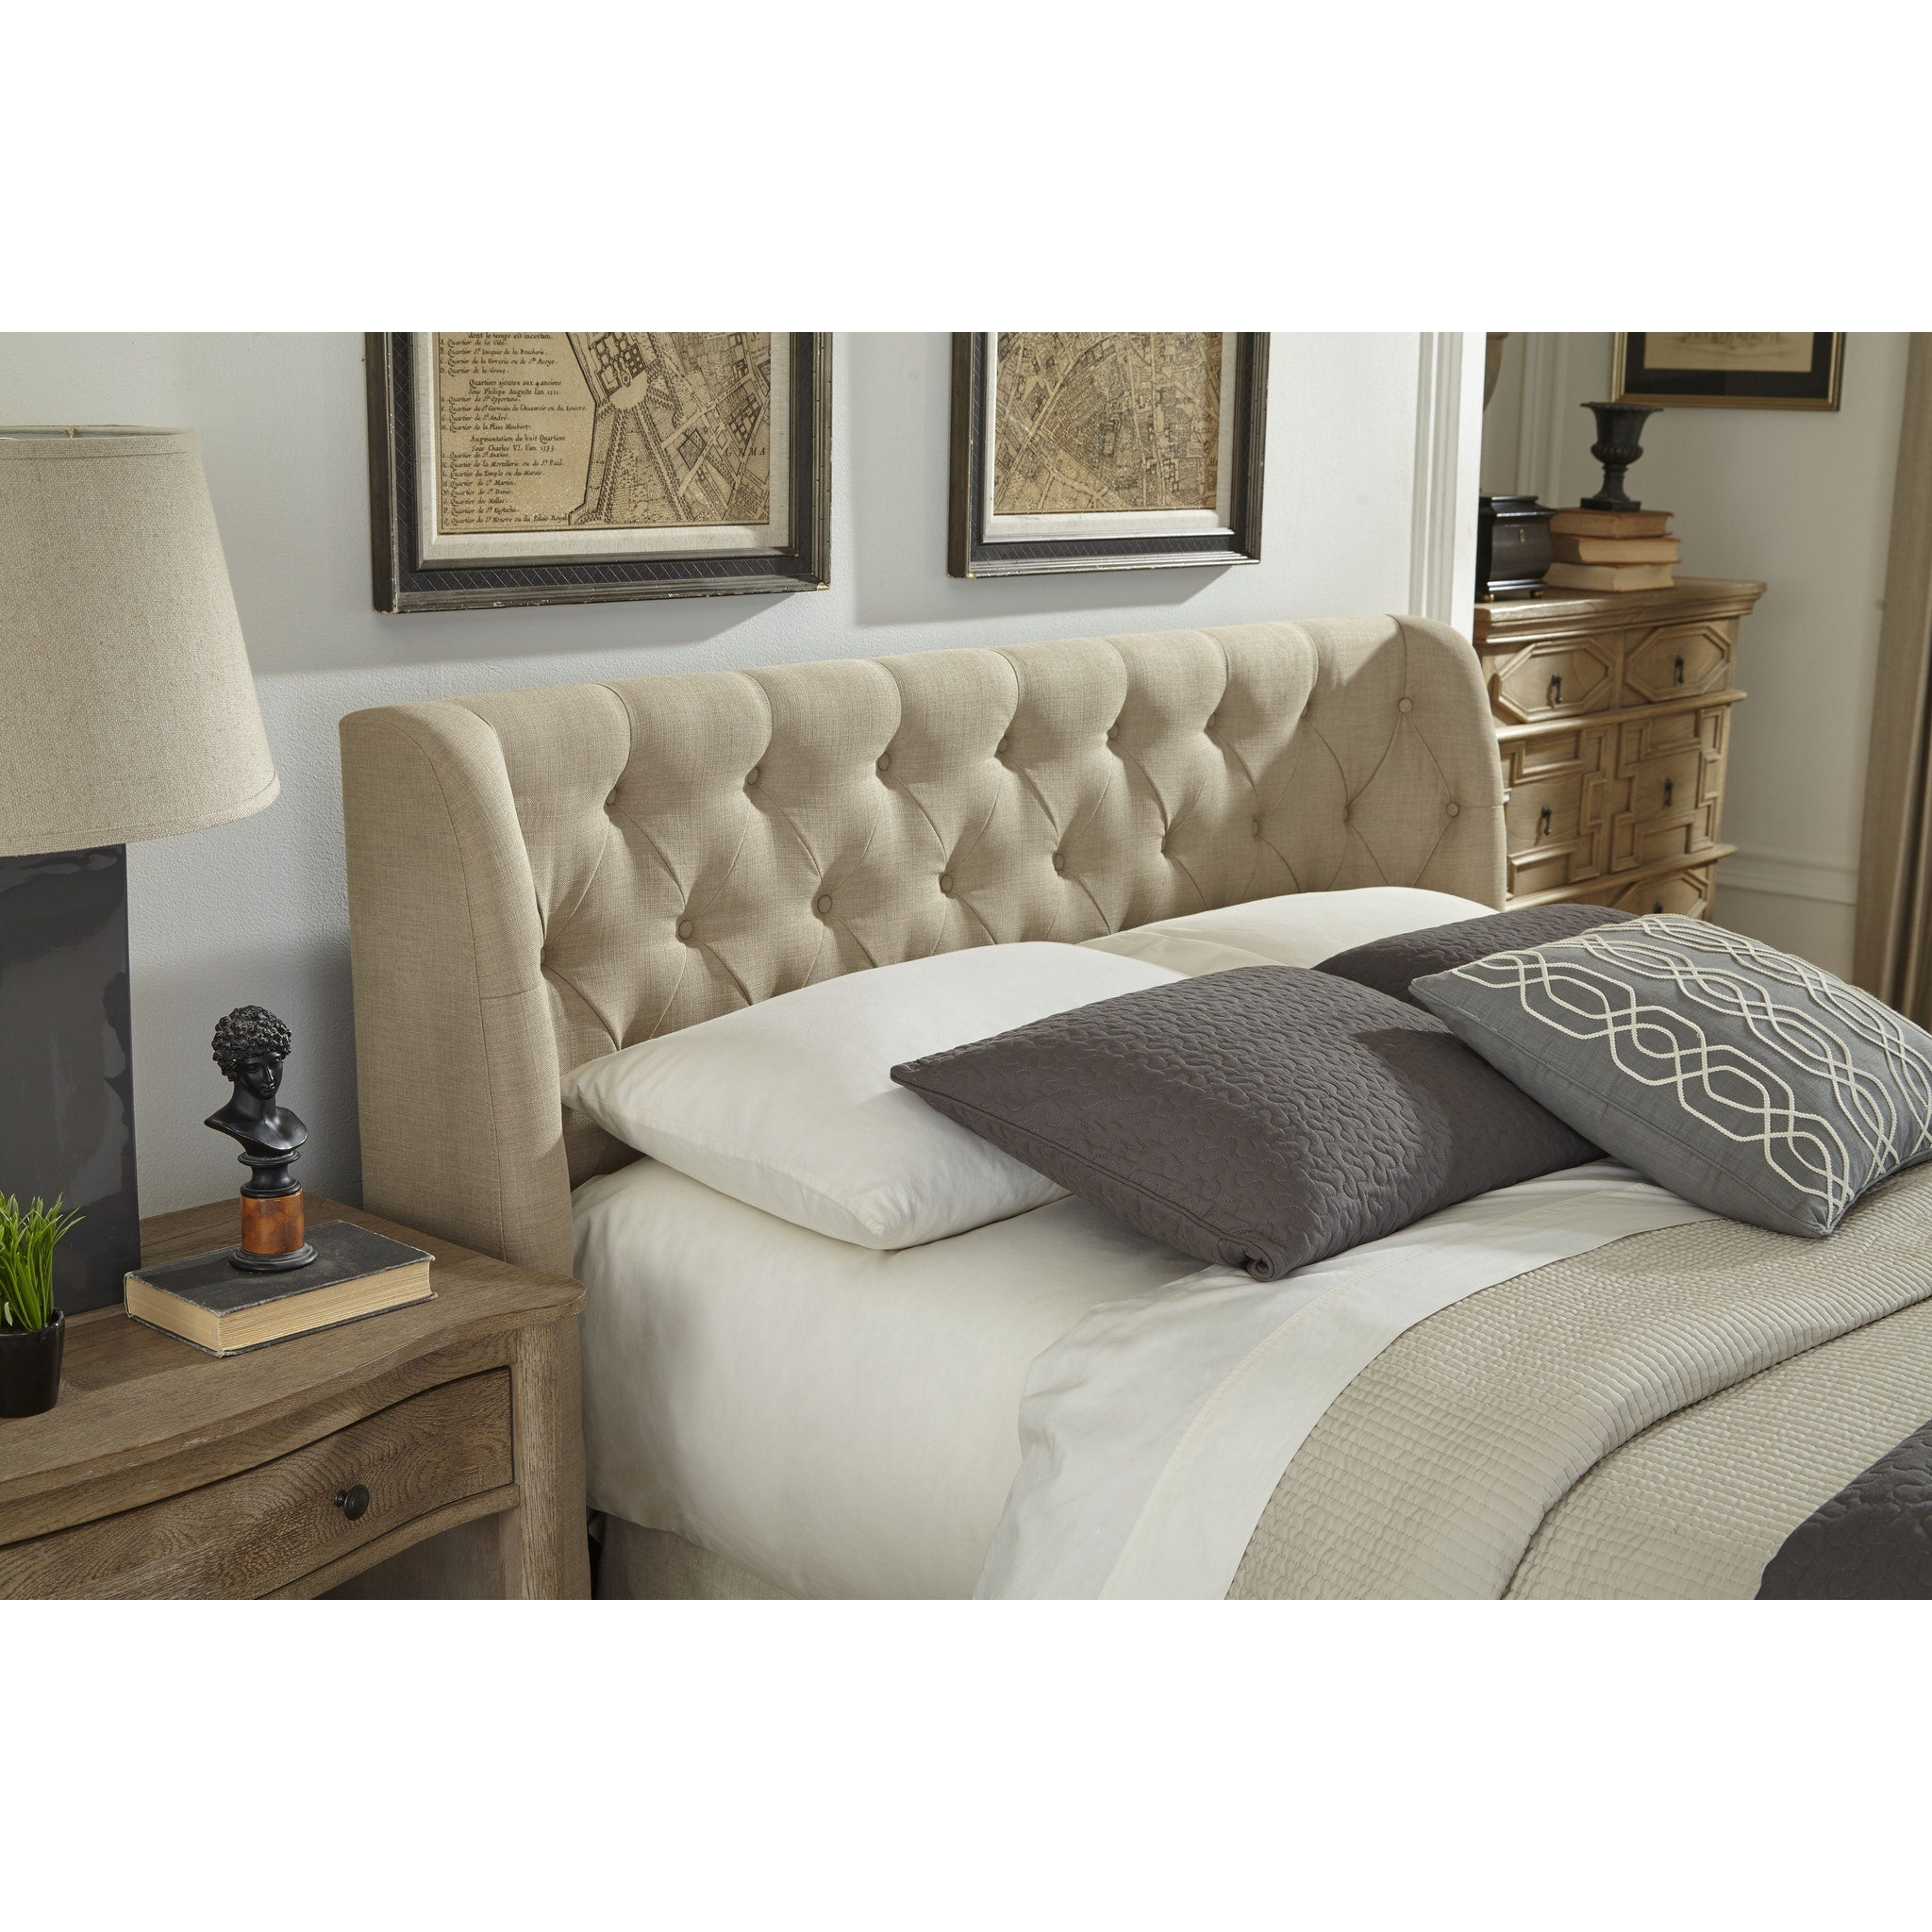 Levi King Size Tufted Storage Bed In Toast Linen Top Drawer Furniture